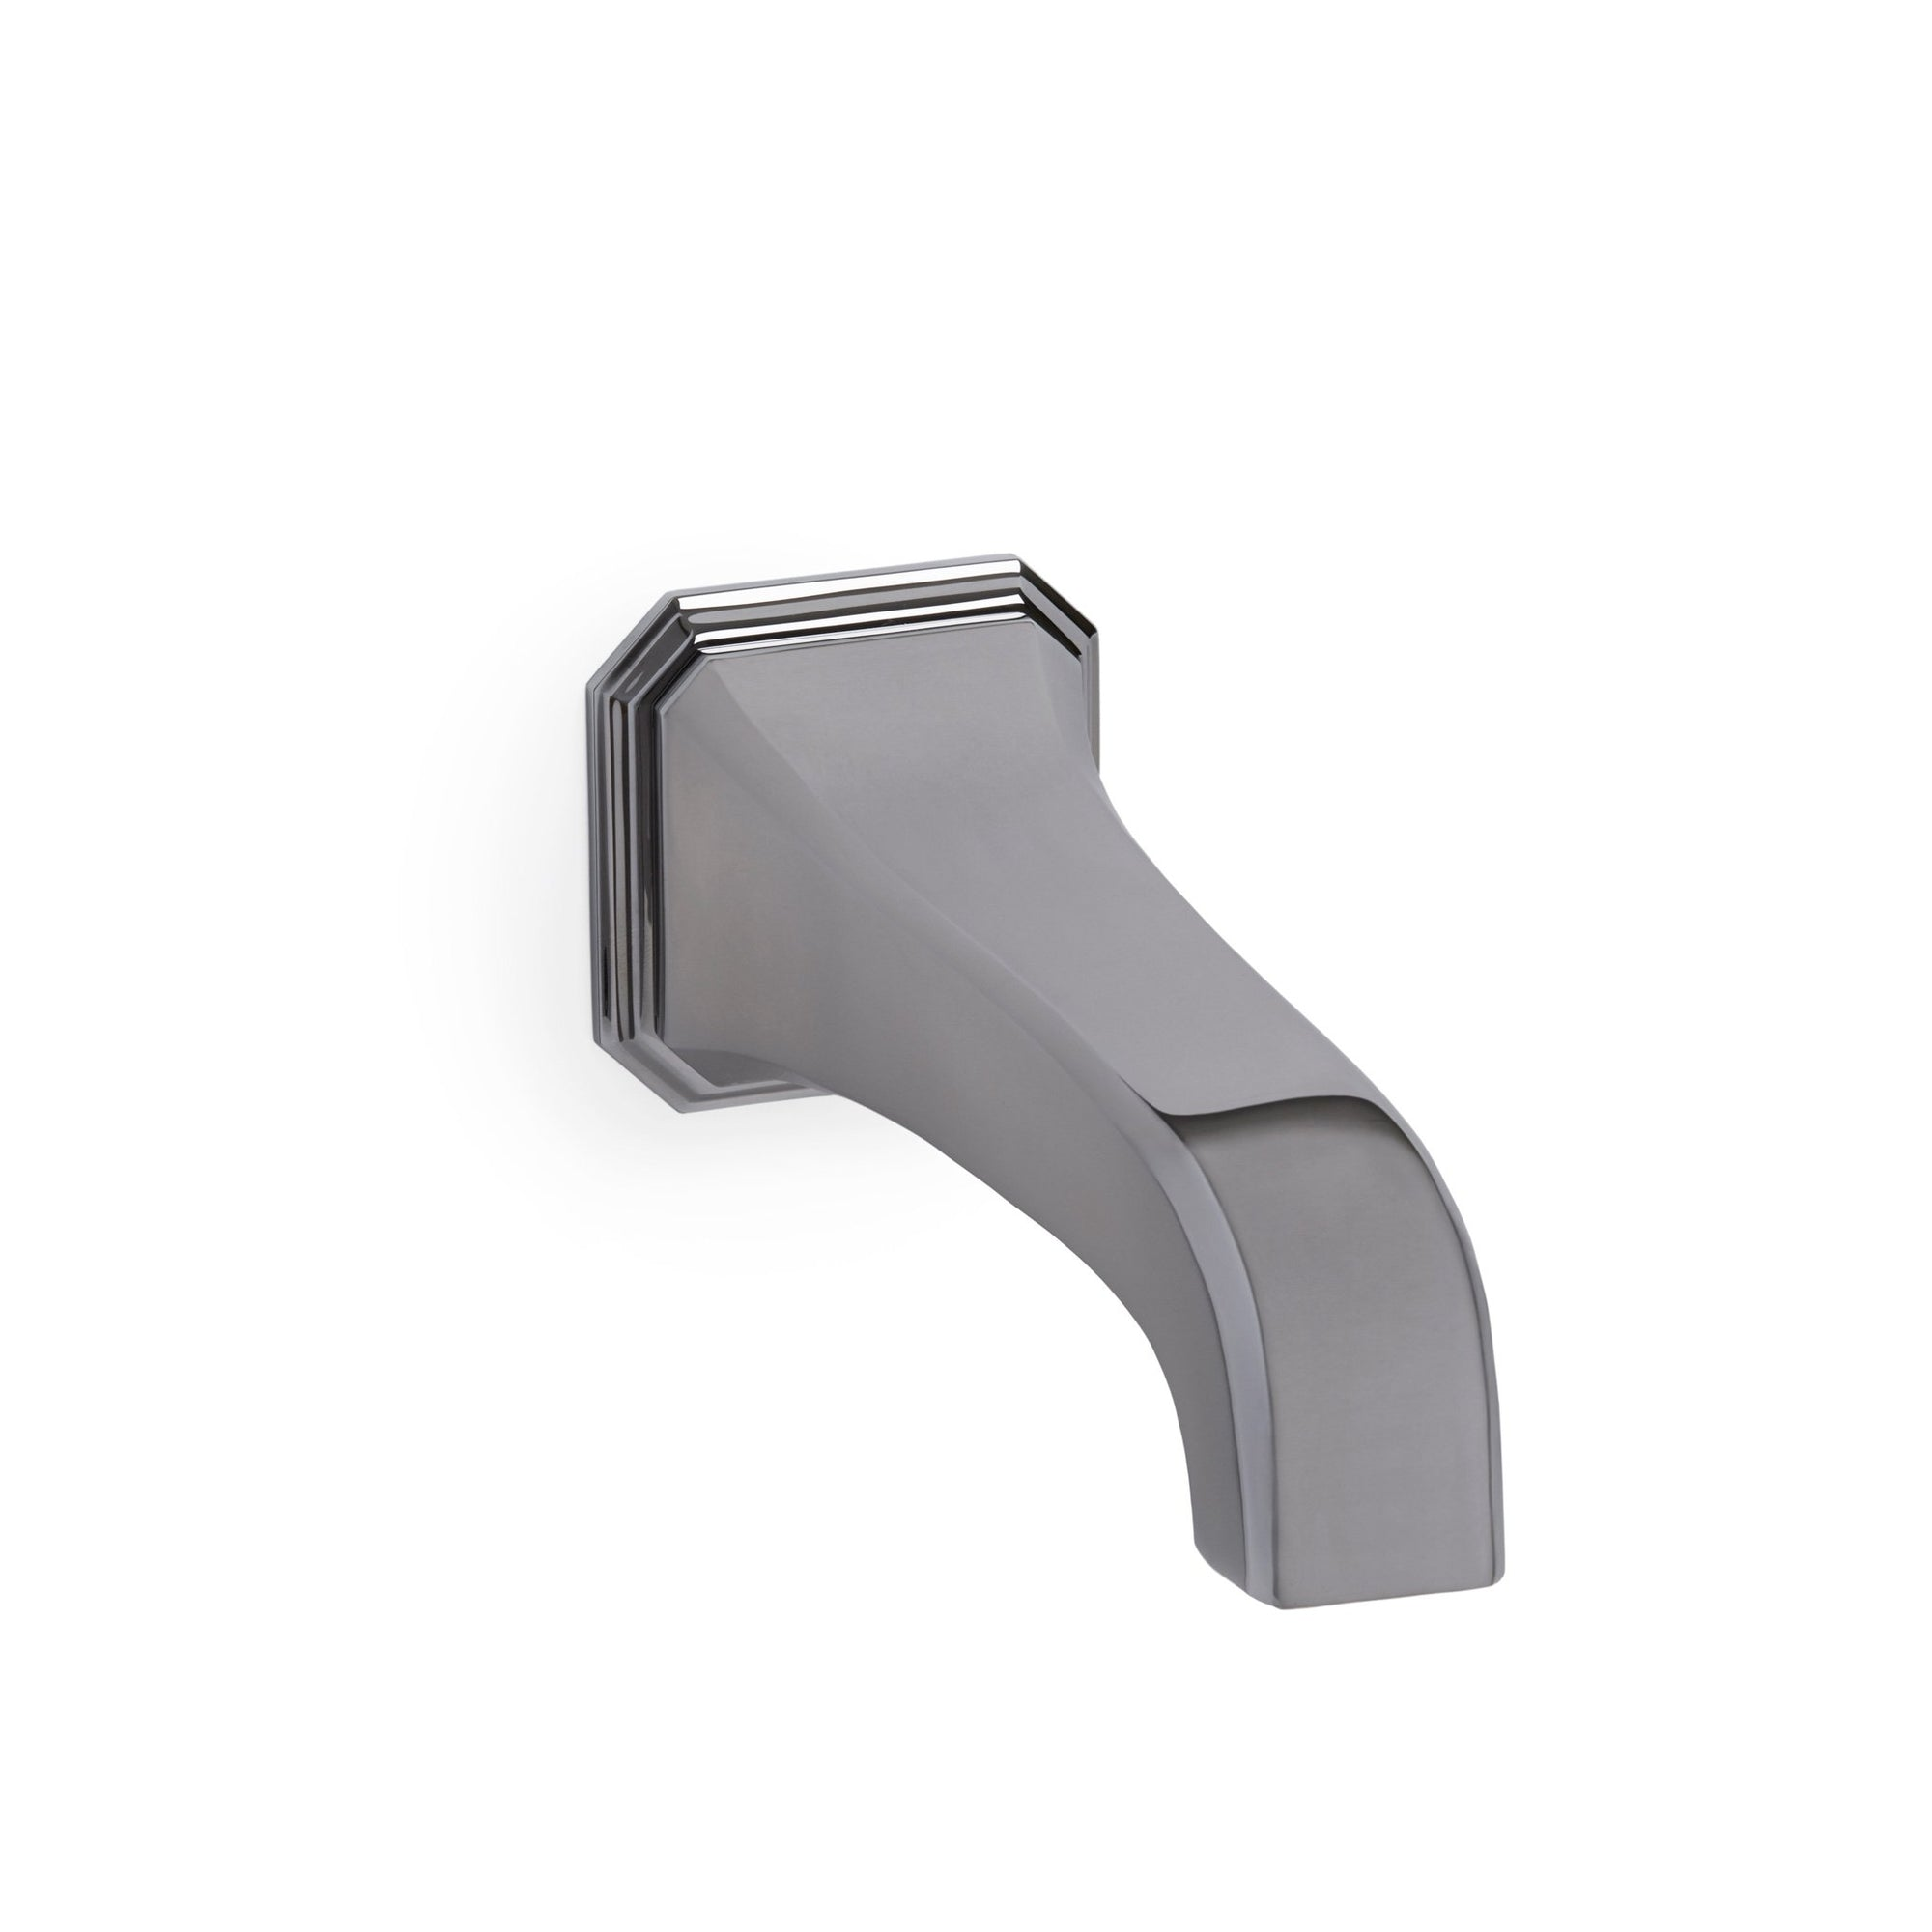 0824TUB-S-CP Sherle Wagner International Harrison Wall Mount Tub Spout Small in Polished Chrome metal finish